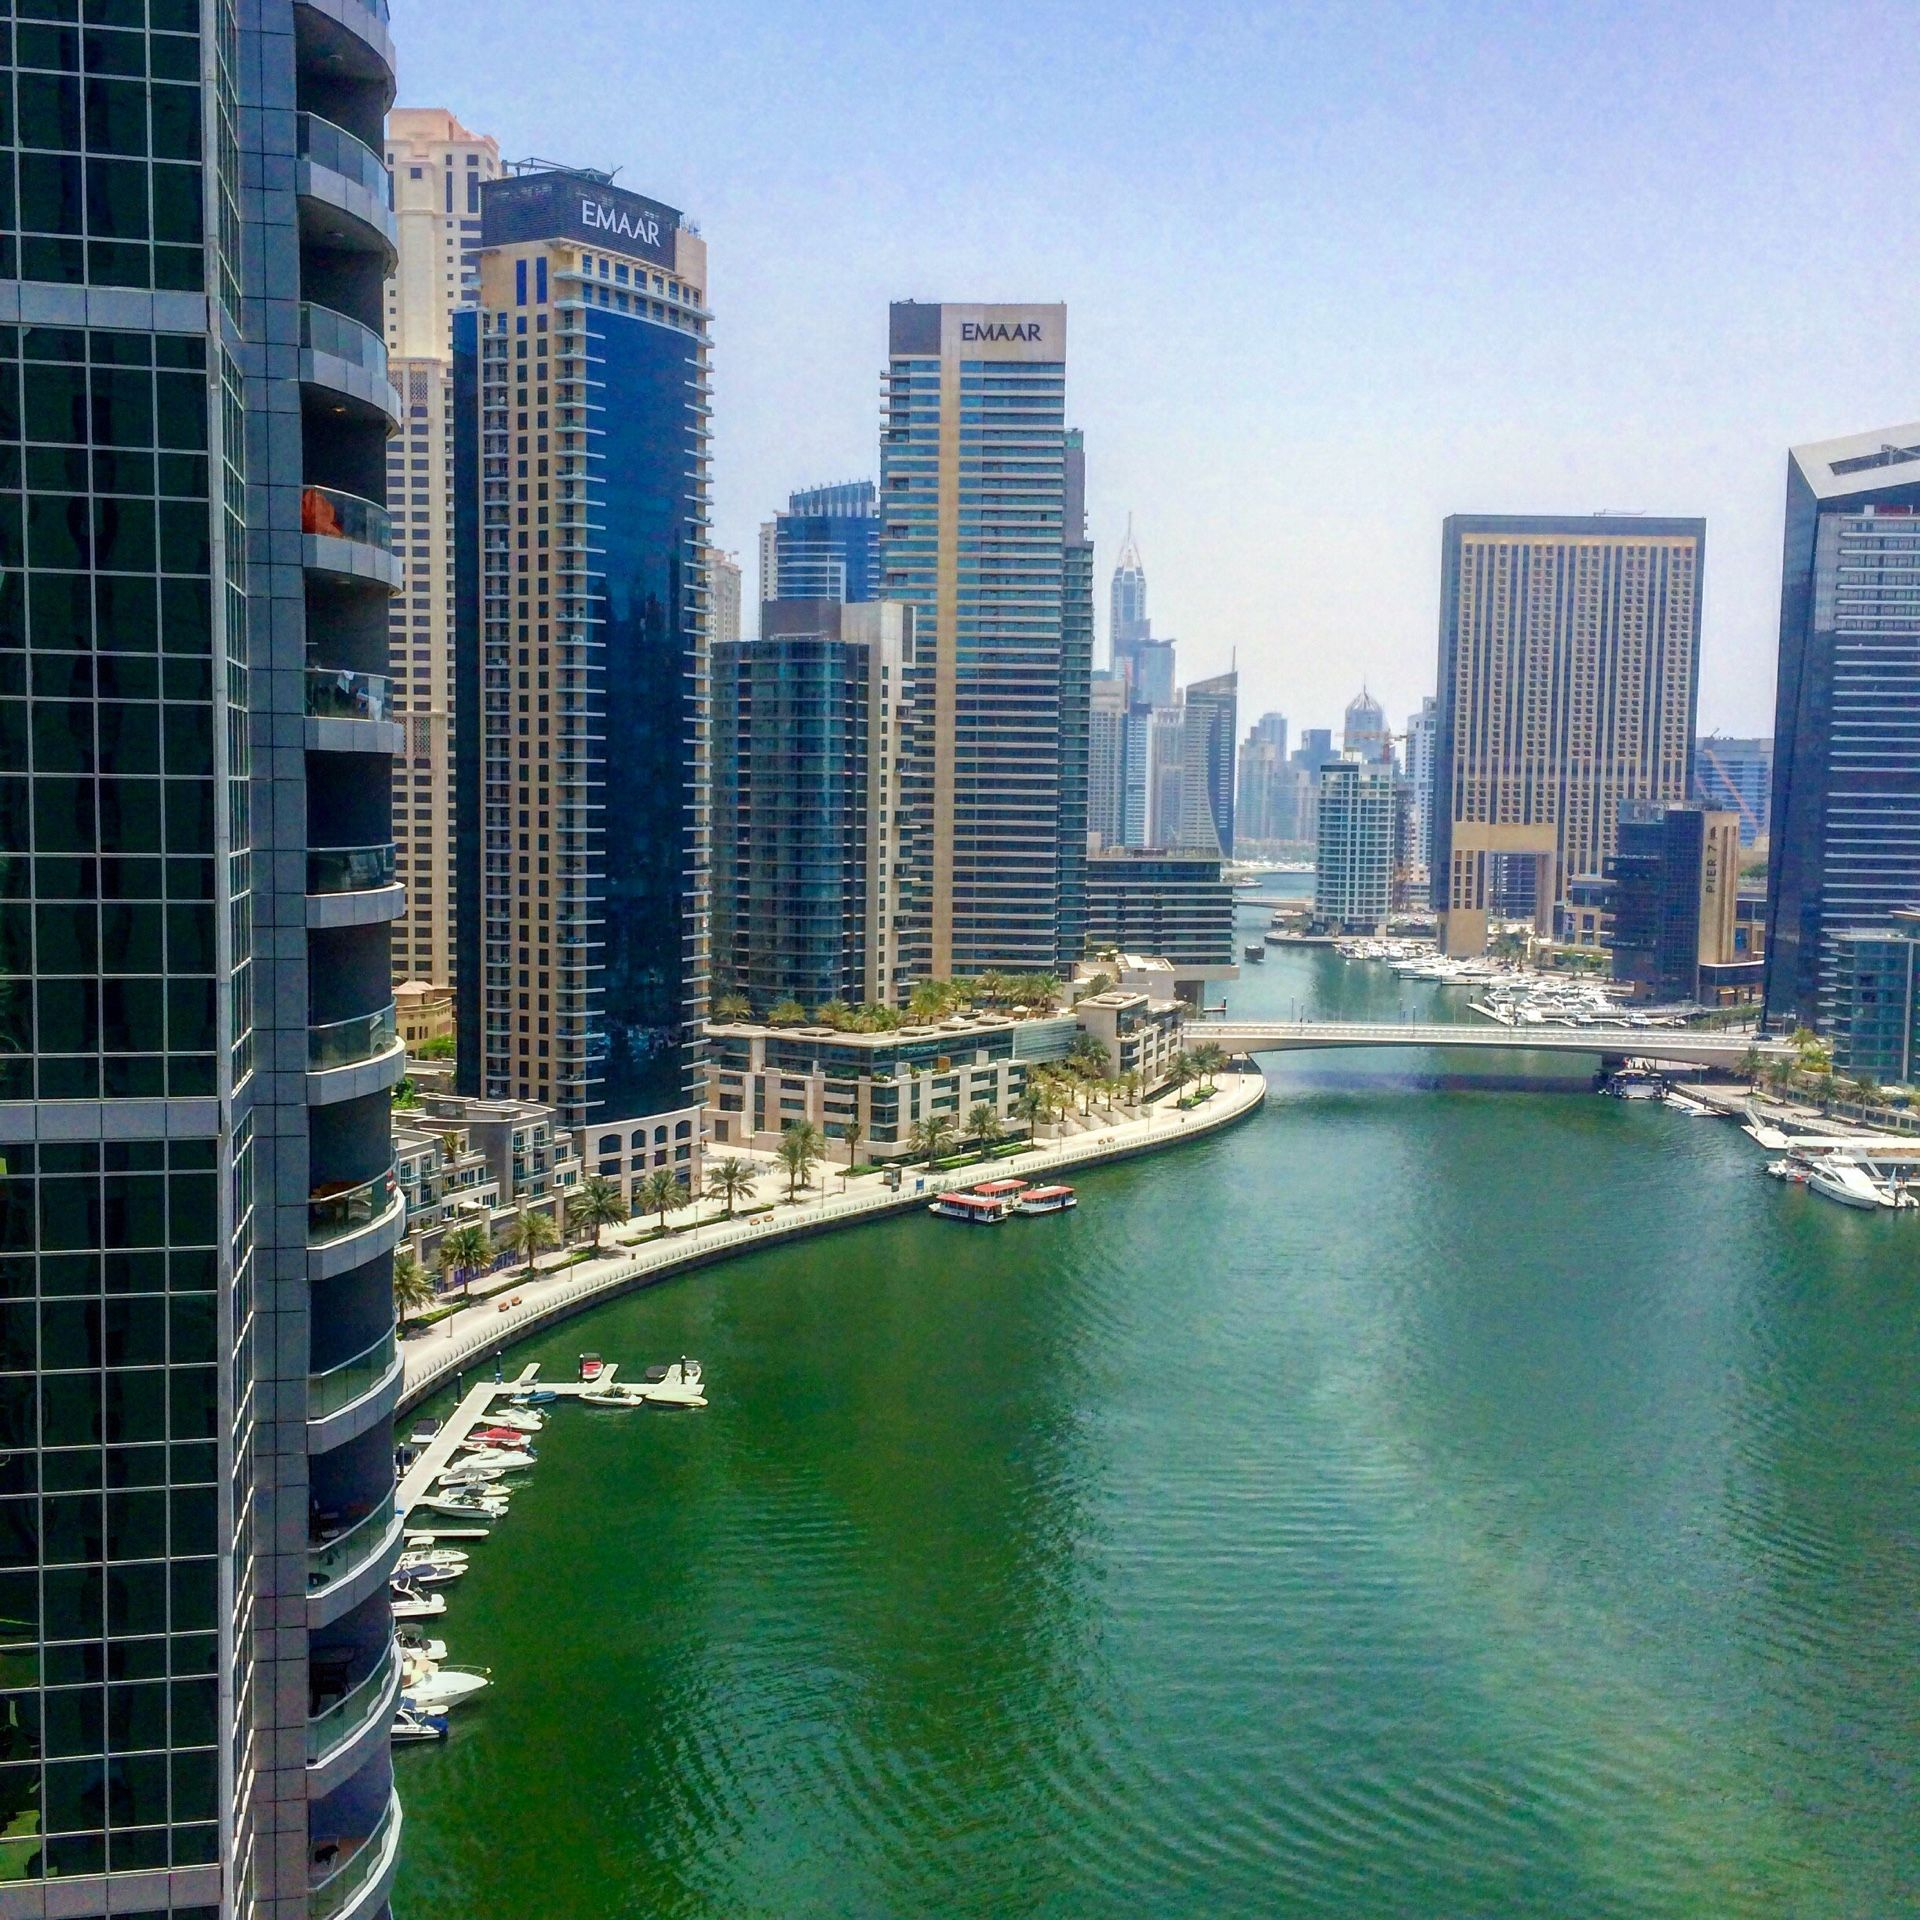 Cheap Apartments For Rent Dubai: Buy, Sell, Rent Apartments And Villas In Dubai UAE